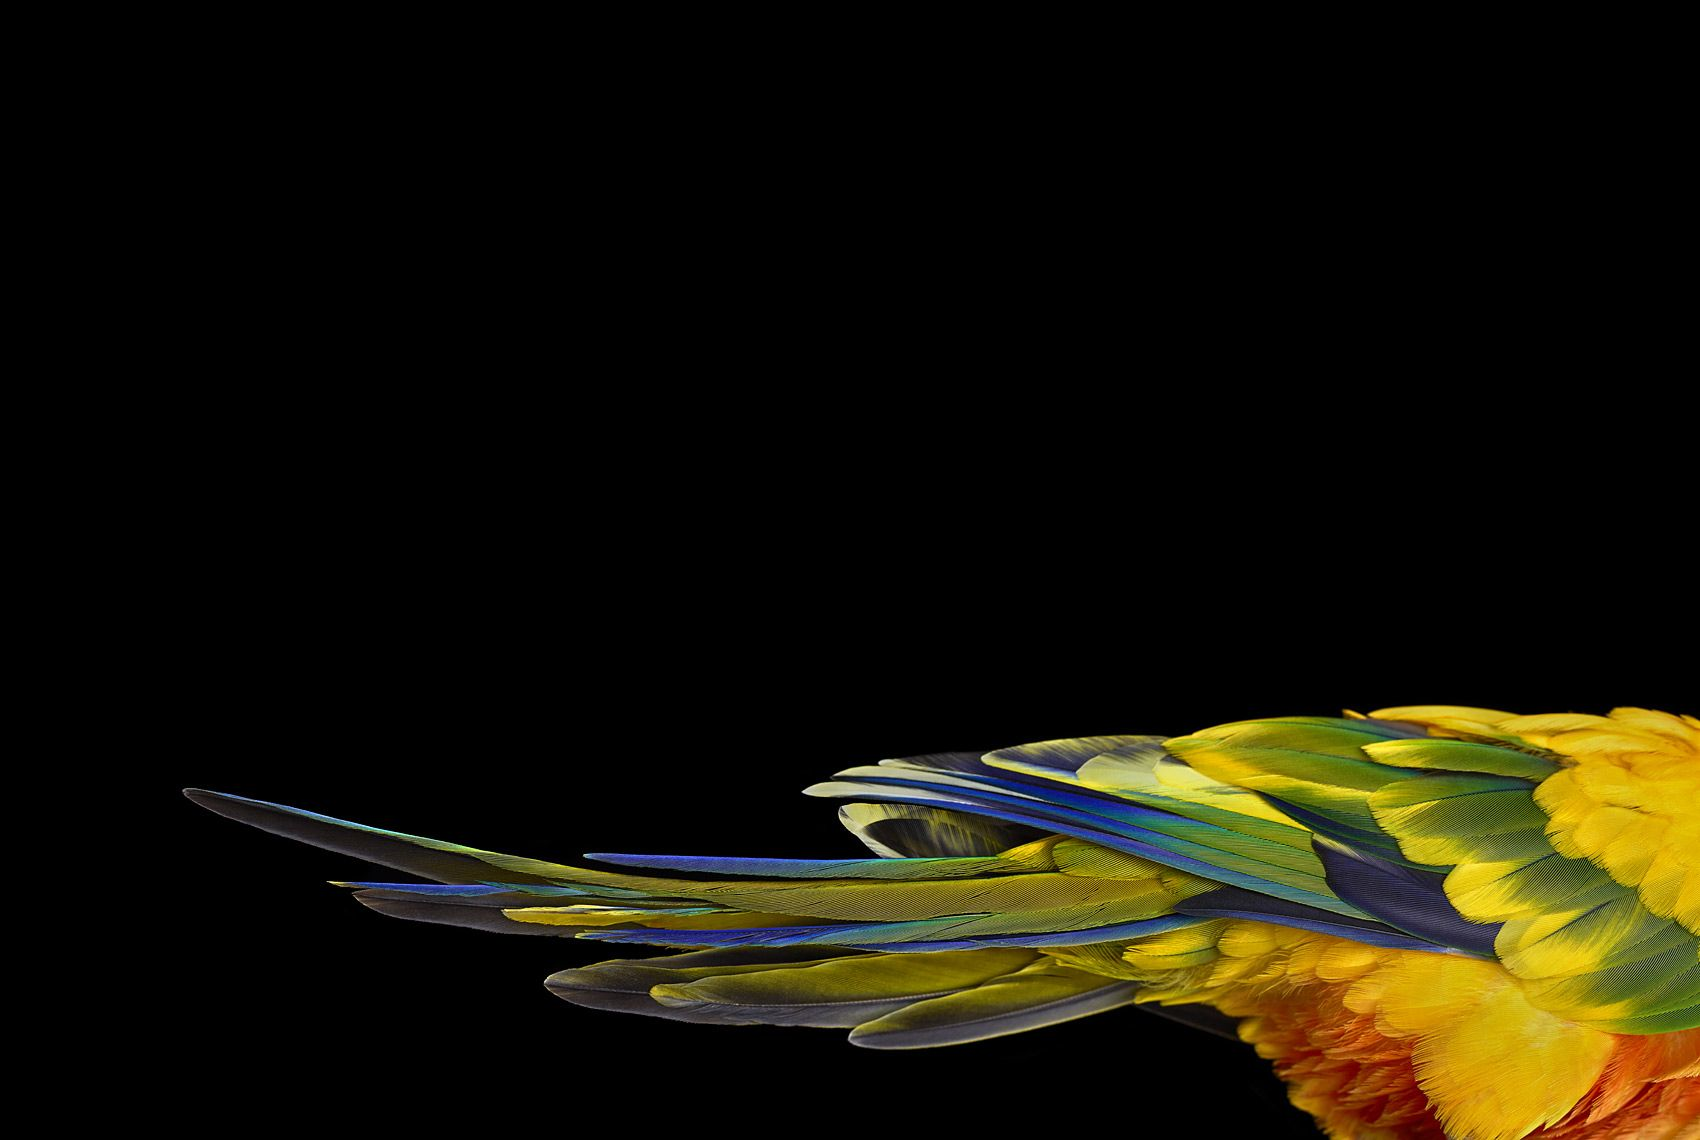 Sun Conure #1, Albuquerque, NM, 2016,Brad Wilson,Photographie contemporaine